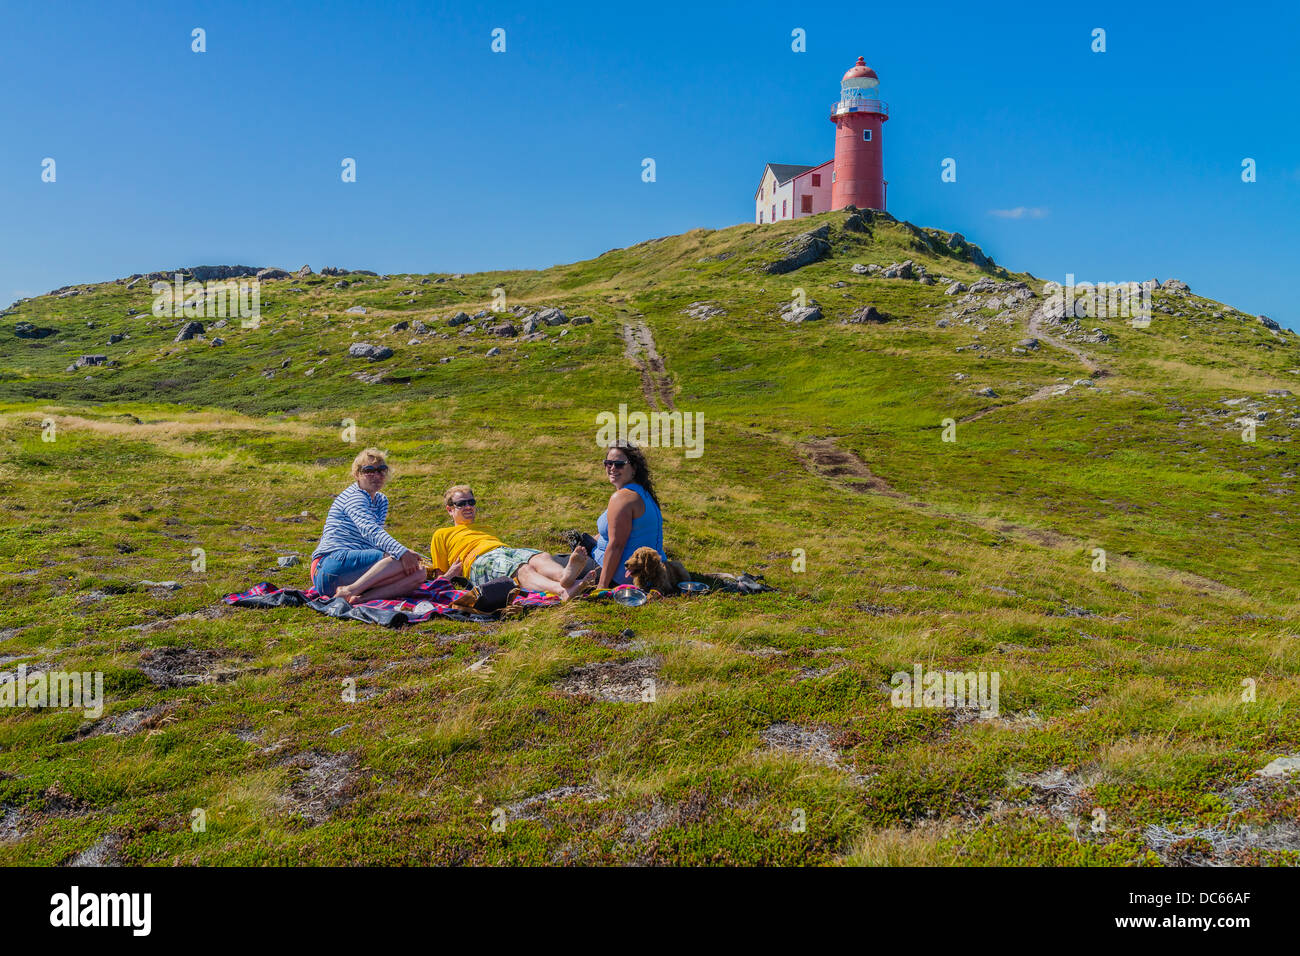 Canadians, two women and one man in their twenties, picnic outside on the ground below the Ferryland Lighthouse - Stock Image